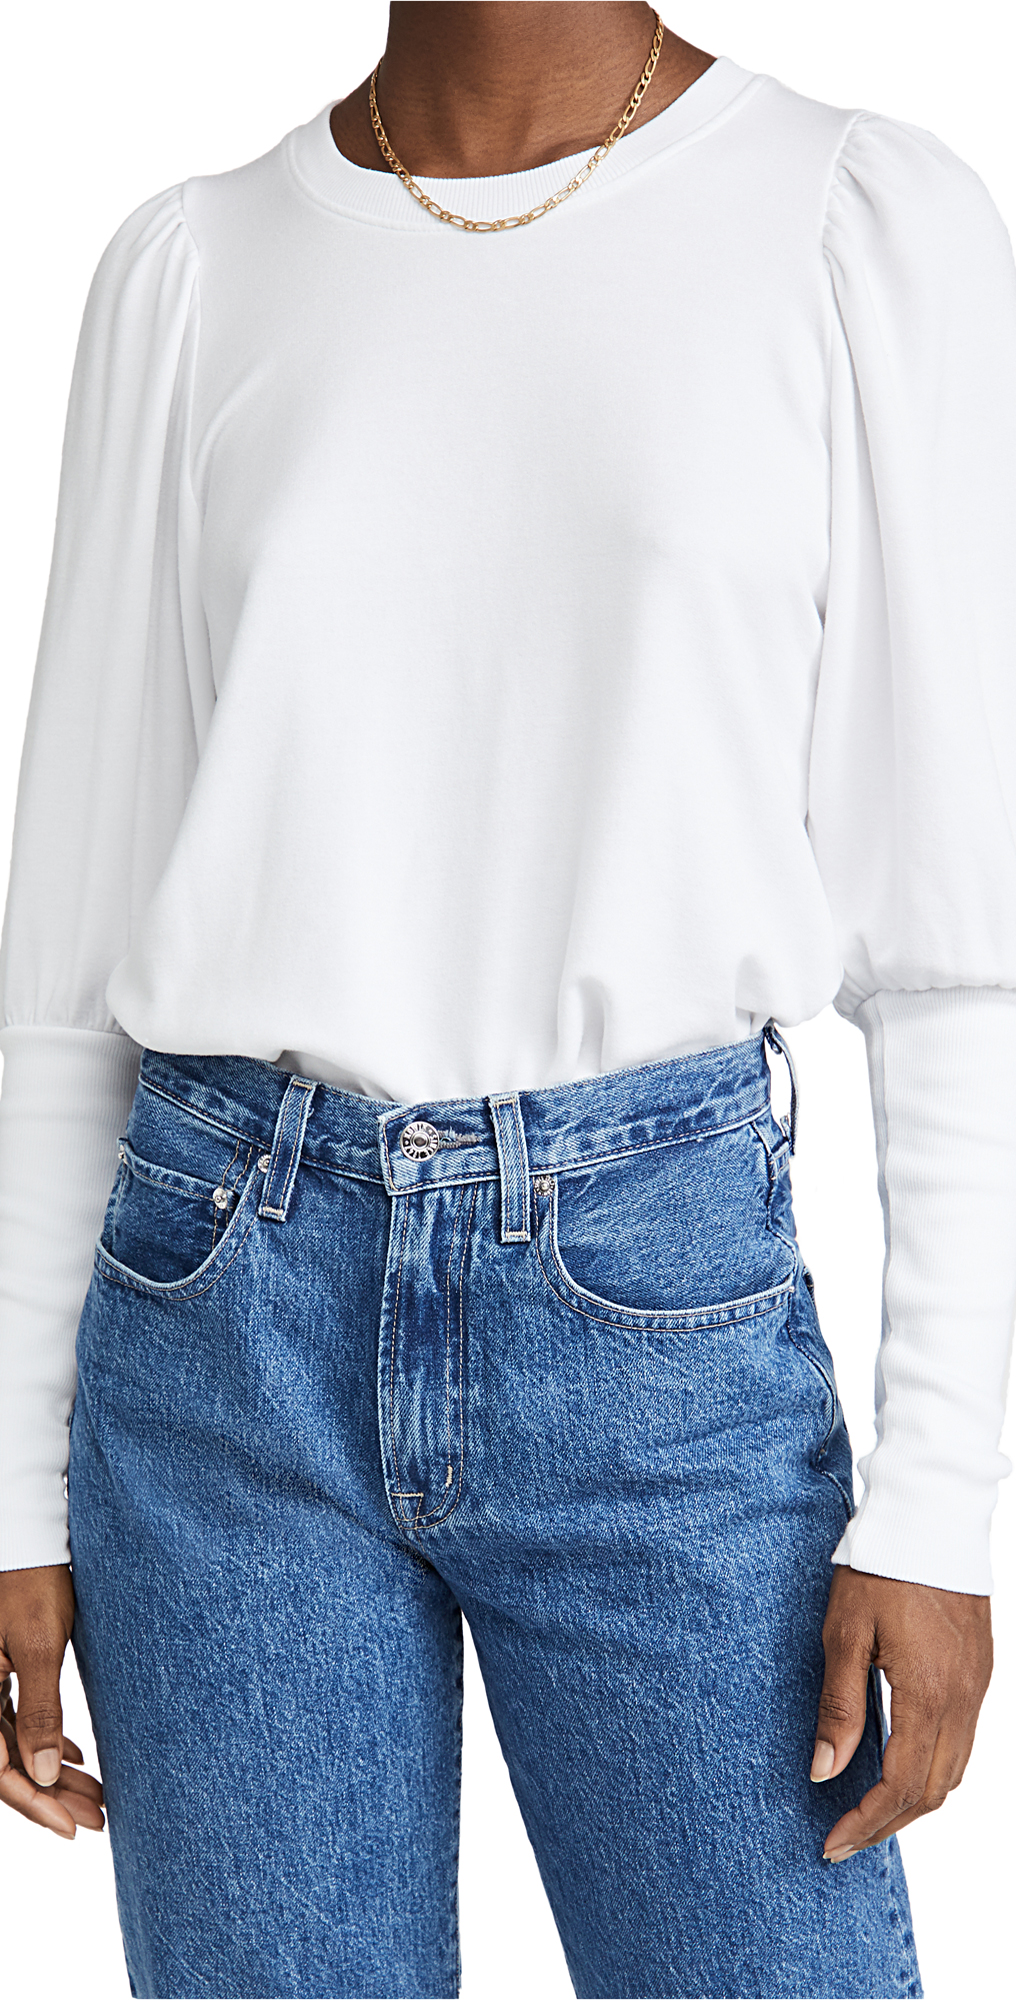 SUNDRY Puff Shoulder Sweatshirt